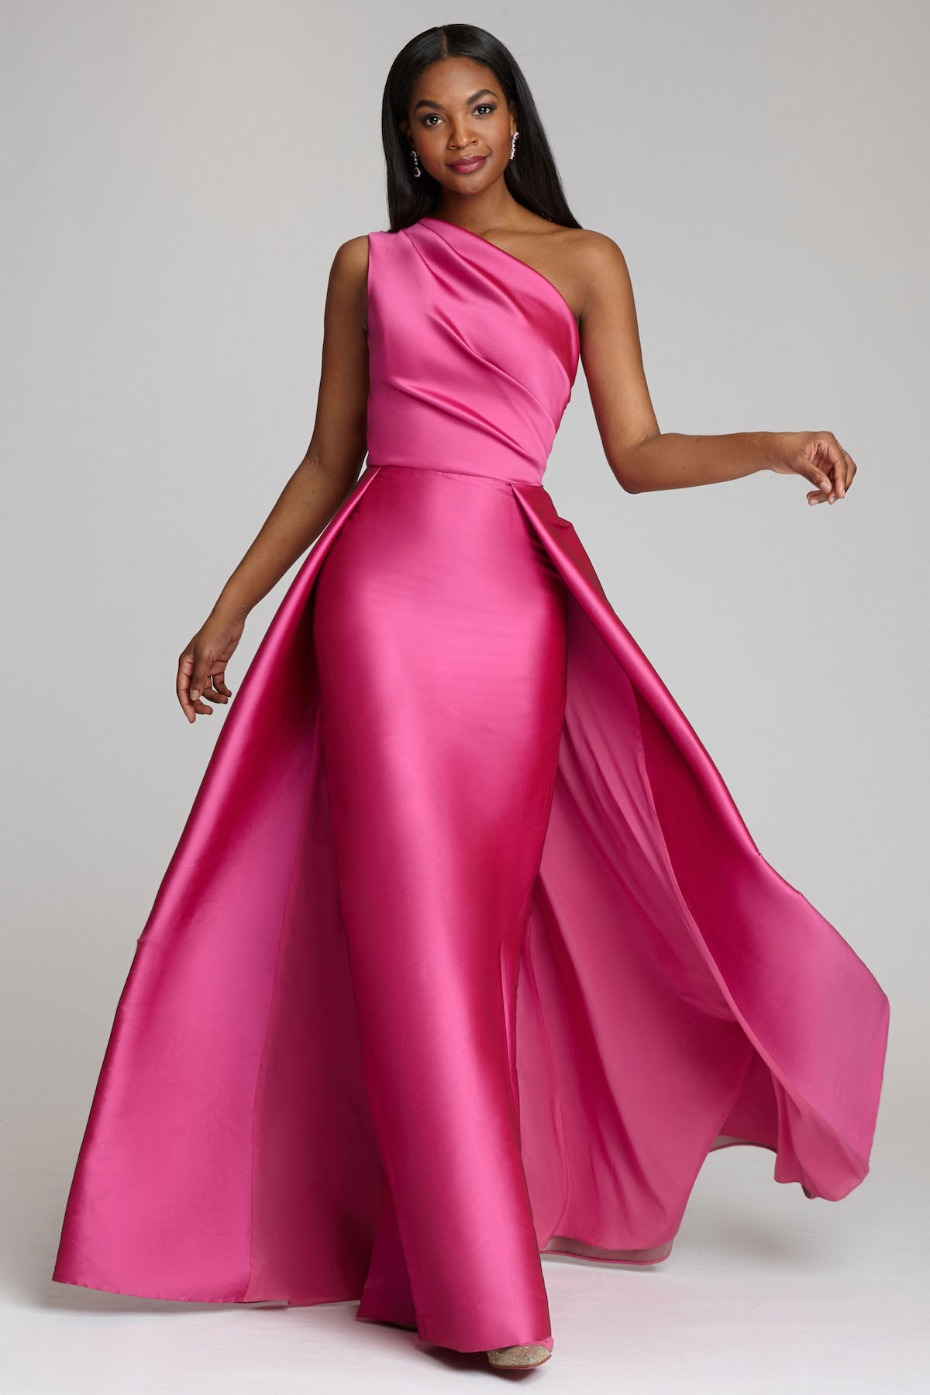 Mesmerizing Mother of the Bride Fashion for Your Scaled-Down Soiree